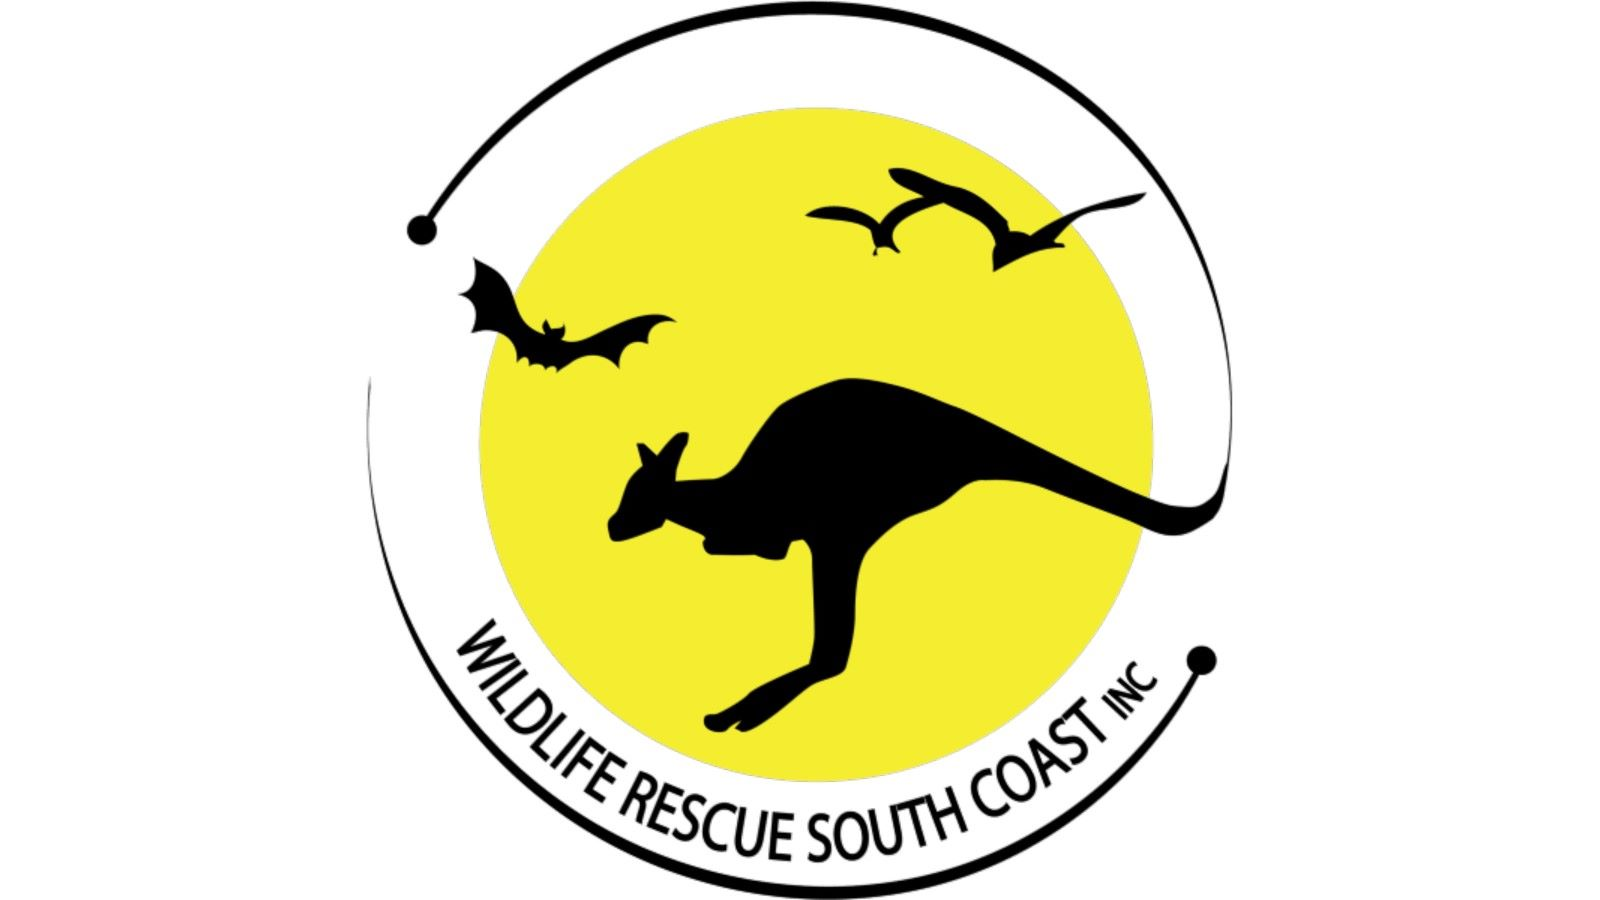 Wildelife Rescue South Coast